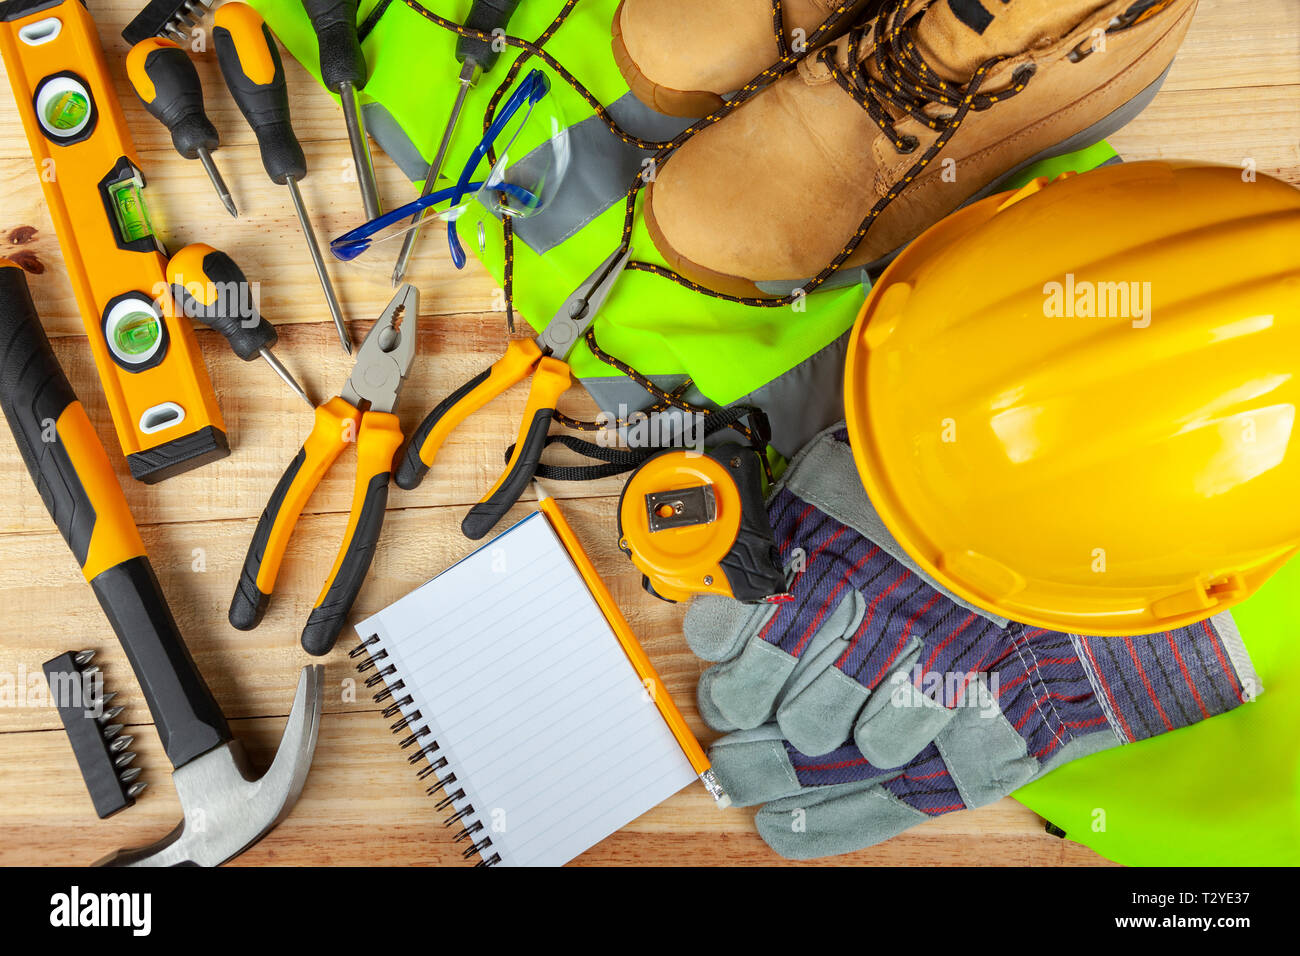 High visibility vest with work boots and yellow hard hat along side various hand tools on a work bench - Stock Image